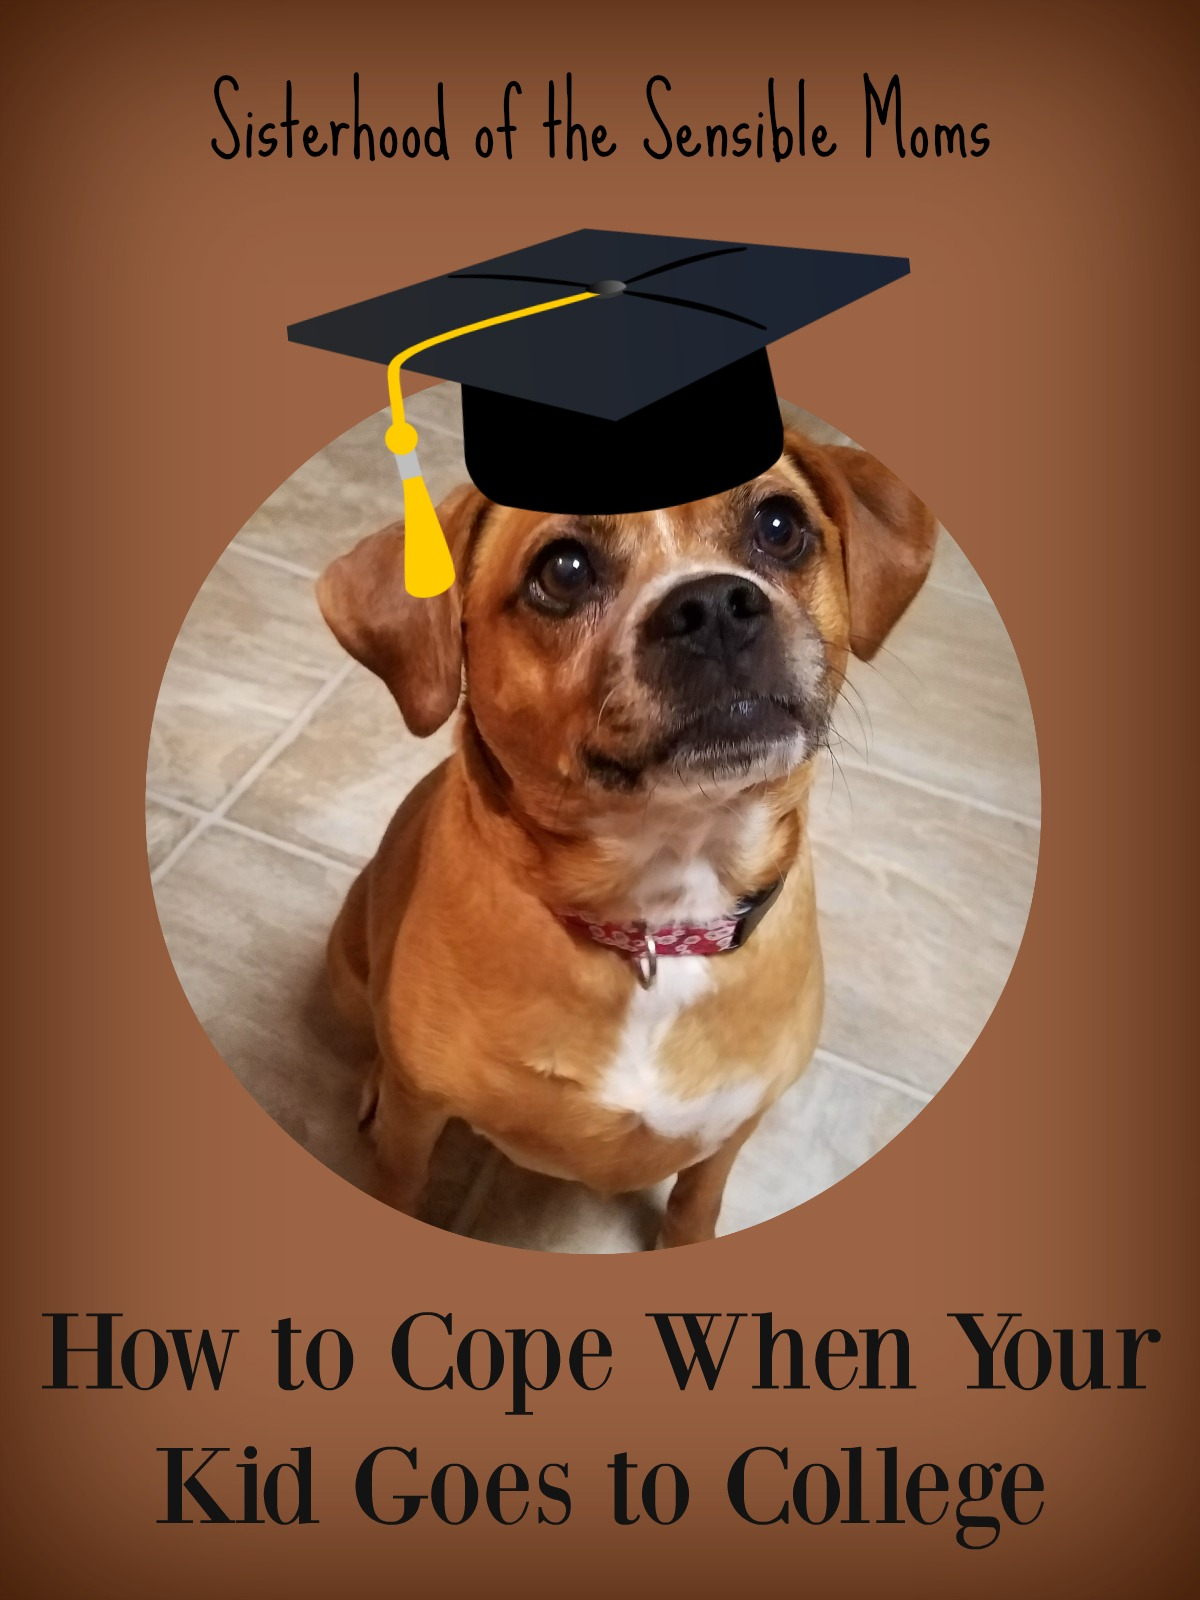 How to cope when your kid goes to college. It's more than a tale of two pound puppies; it's the lengths moms will go to deal with kids flying the coop. | Parenting | Sisterhood of the Sensible Moms